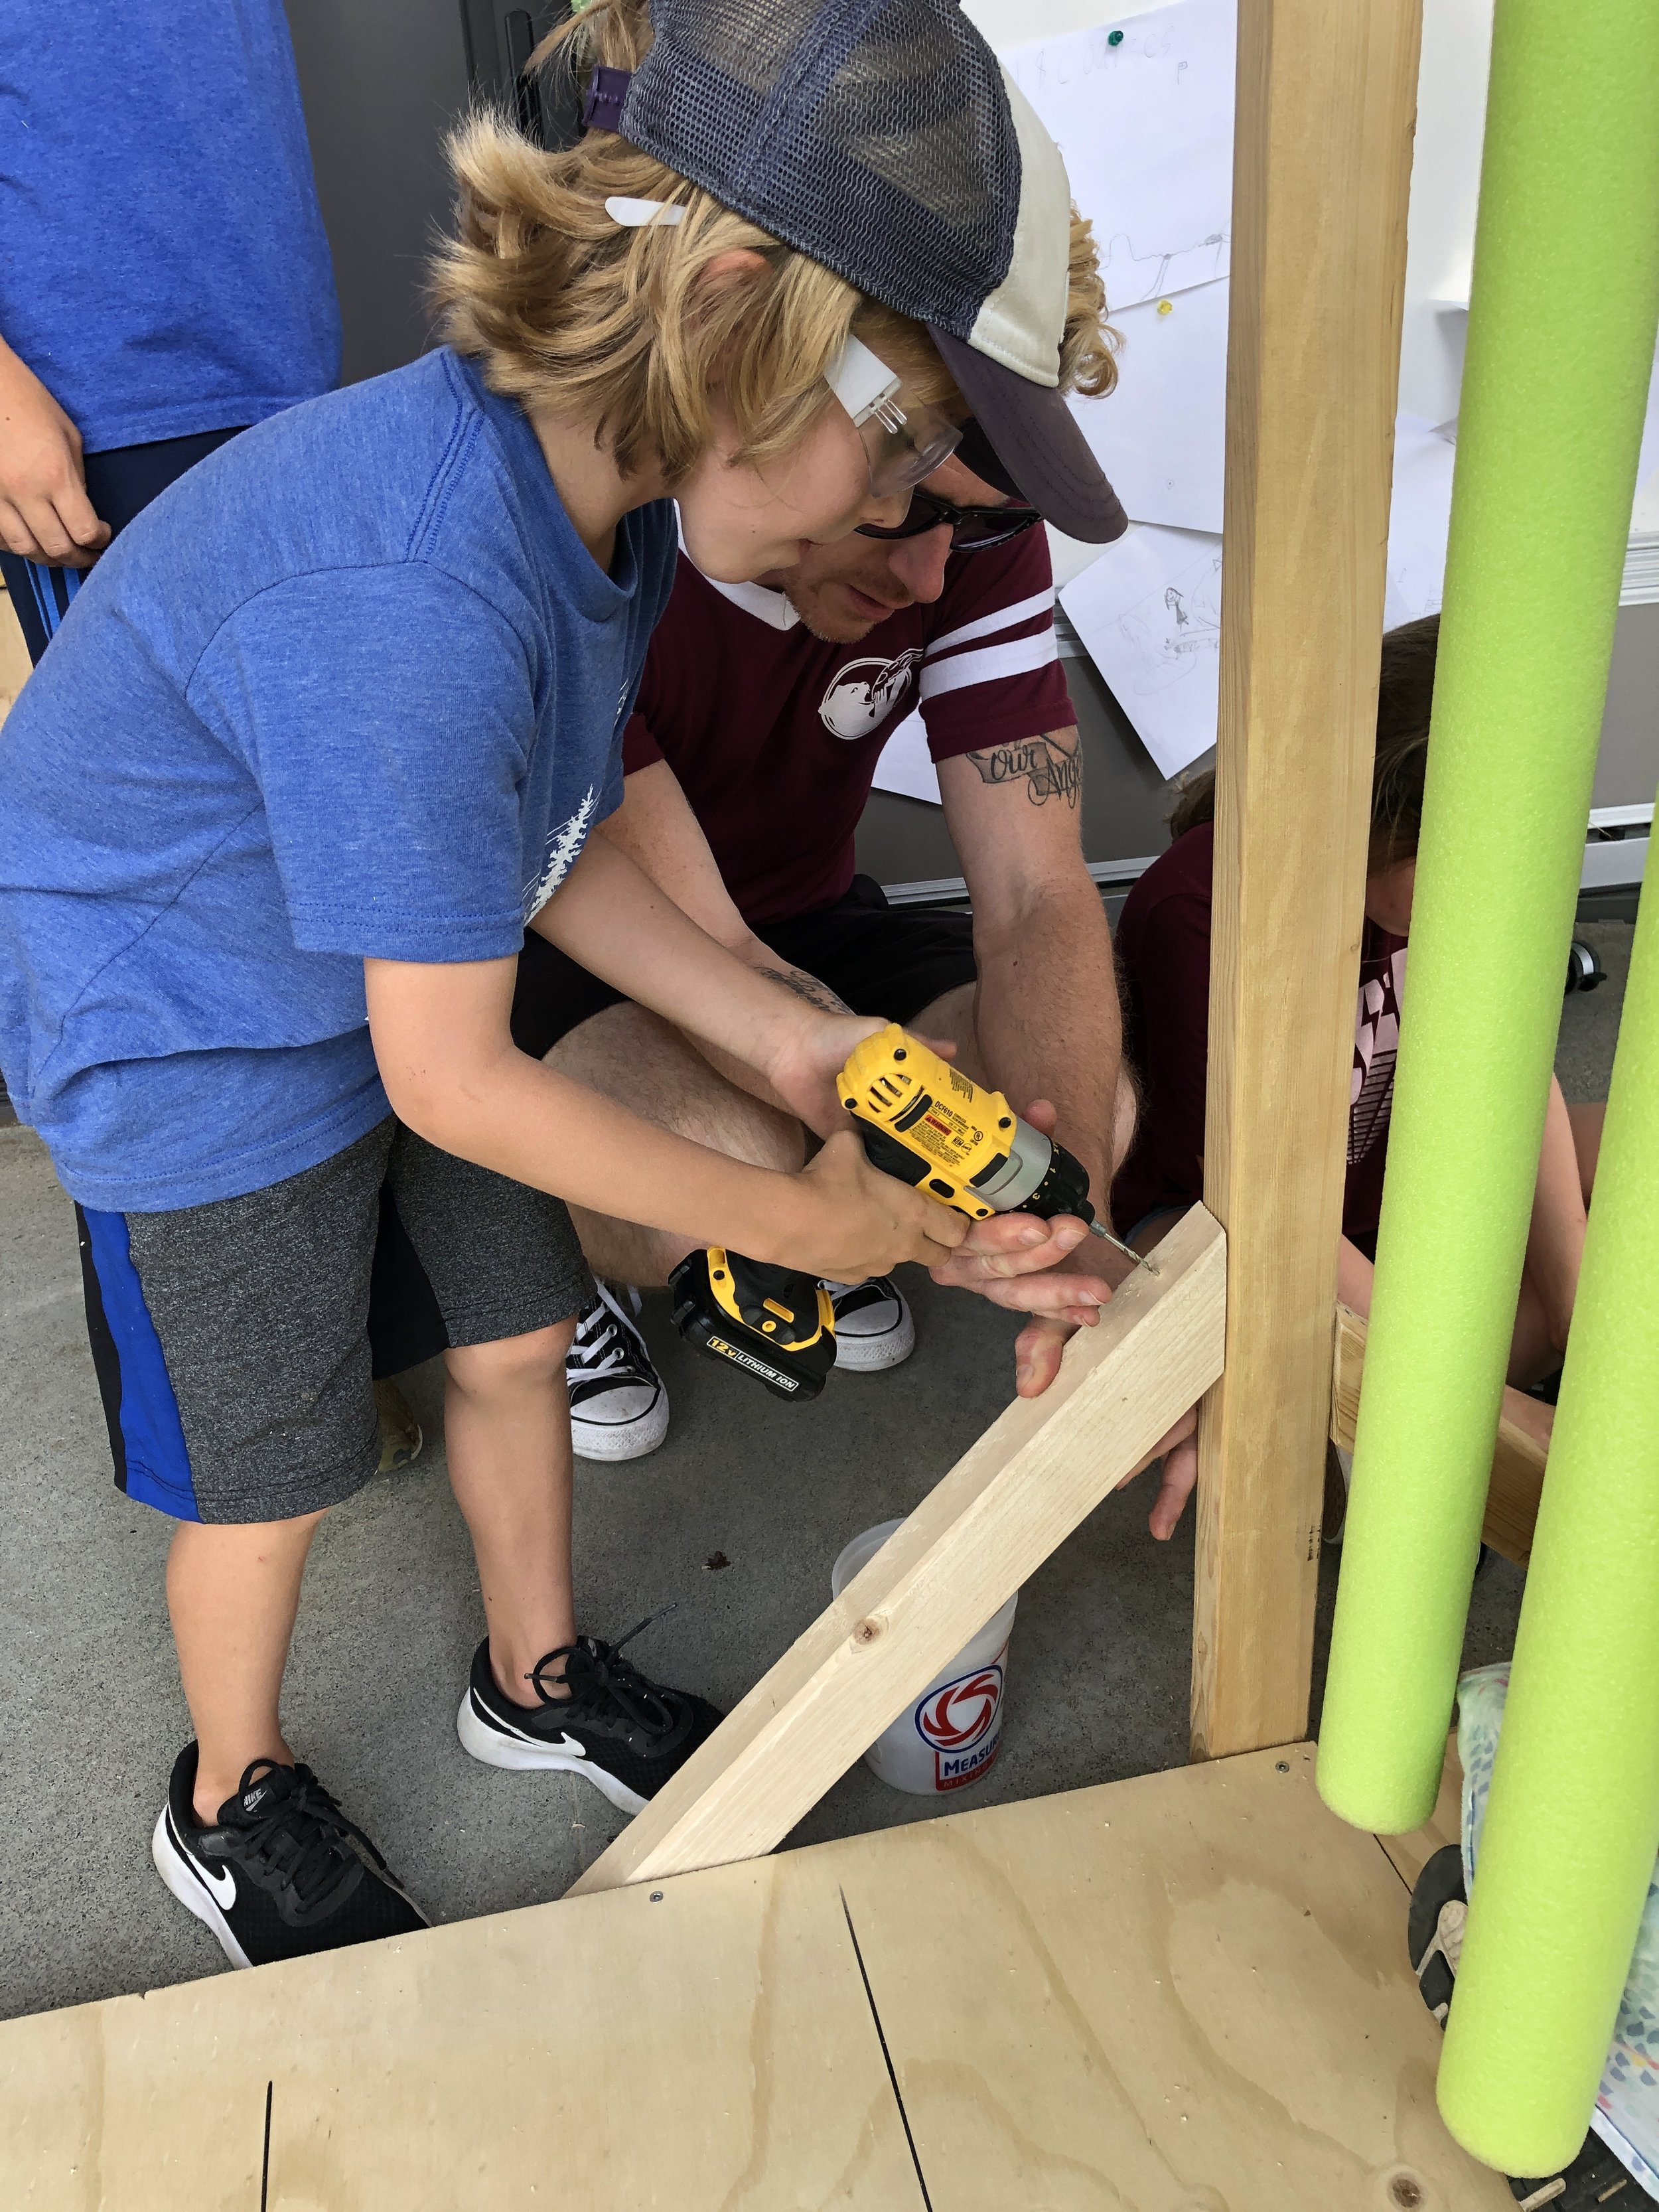 Adding another triangle to secure the frame to the mini golf platform.